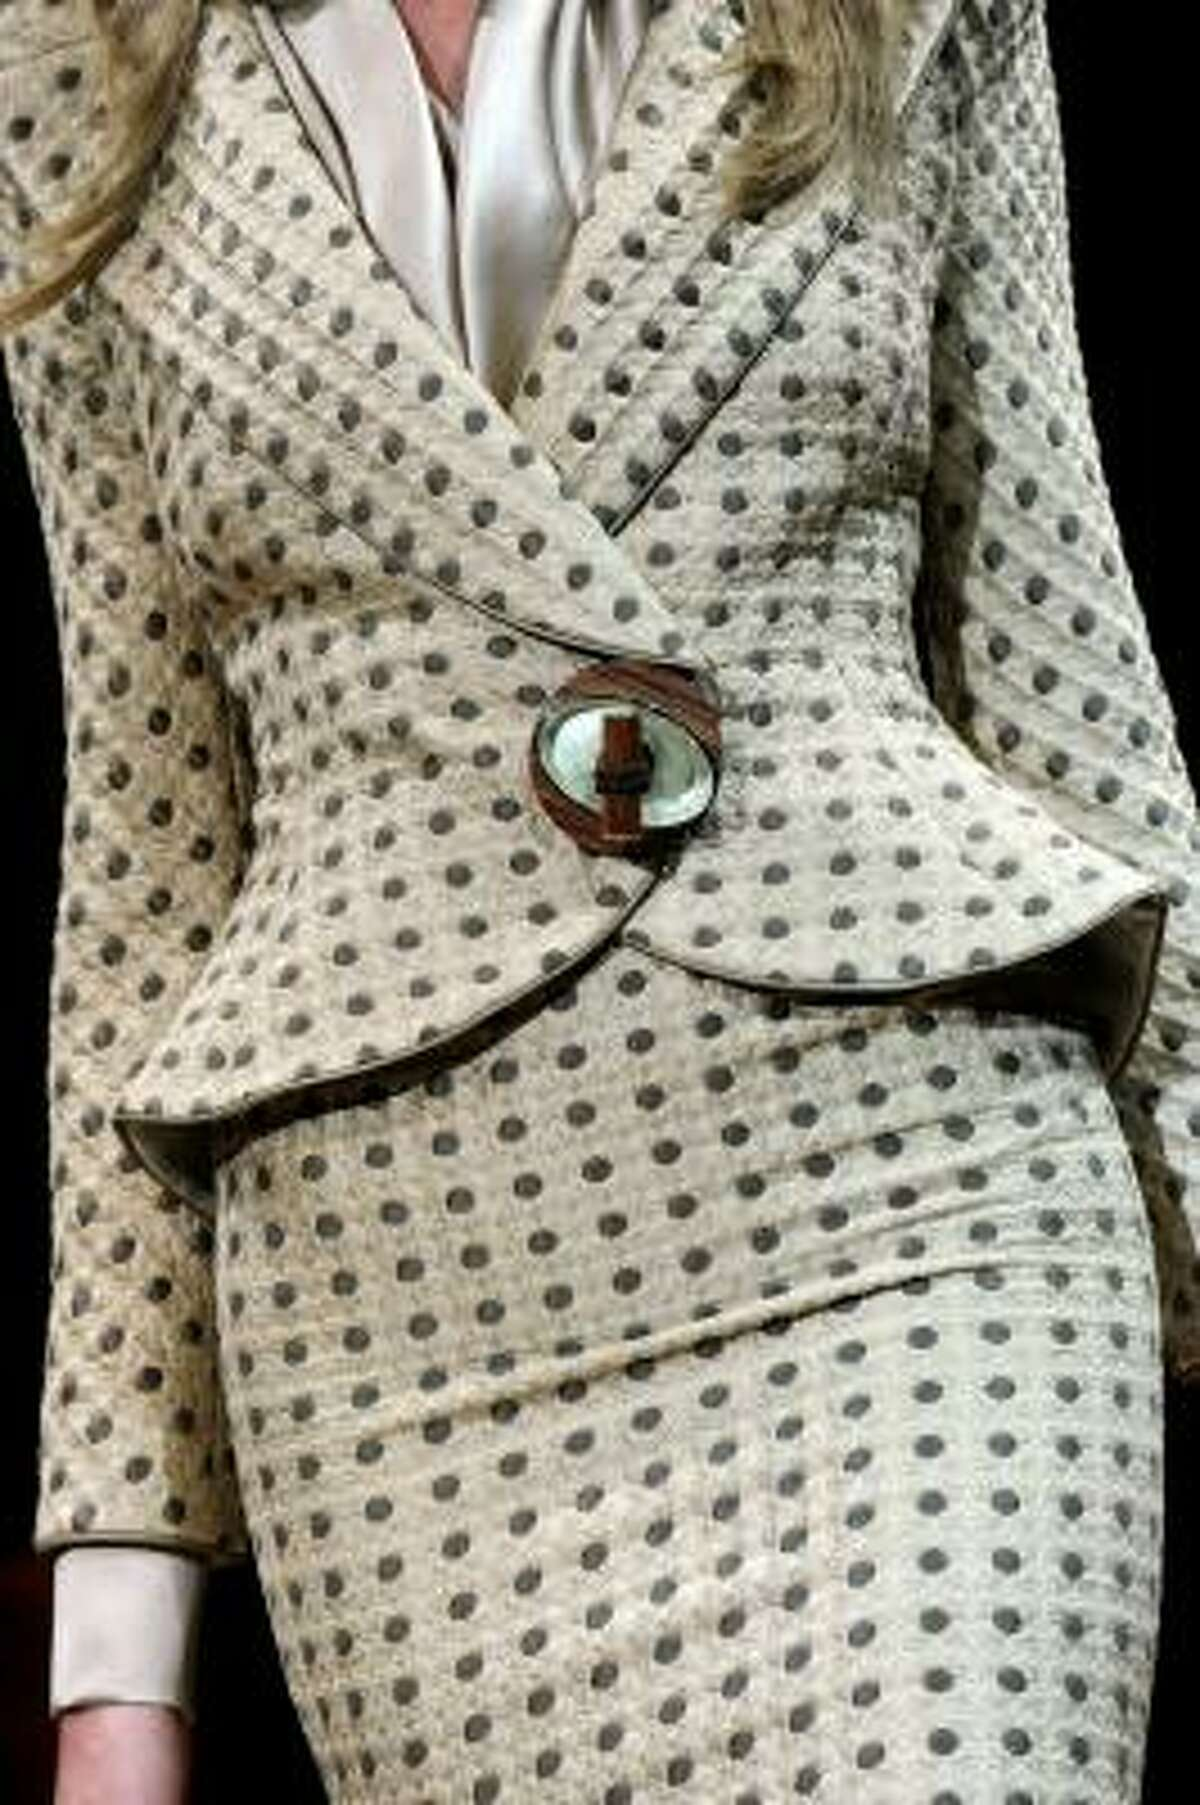 But Mod wasn't the only fashion statement of the '60s. Throwbacks to '50s apparel were still very prominent in 1964. This outfit detail is from the Giorgio Armani Prive shown July 6, 2010.